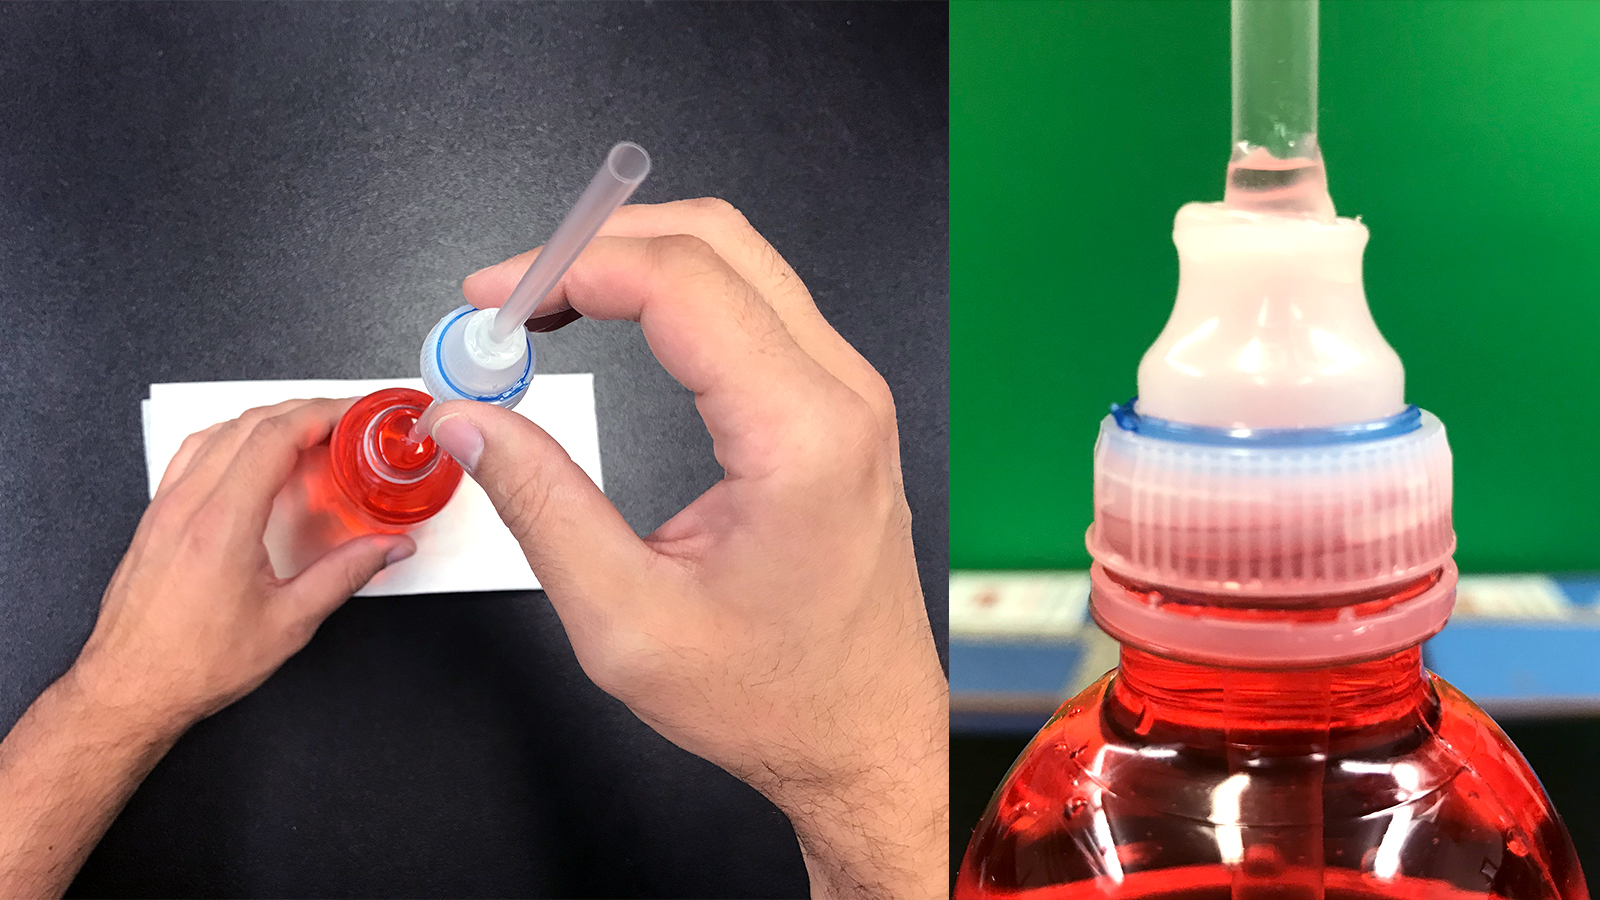 Attaching the cap to the water bottle